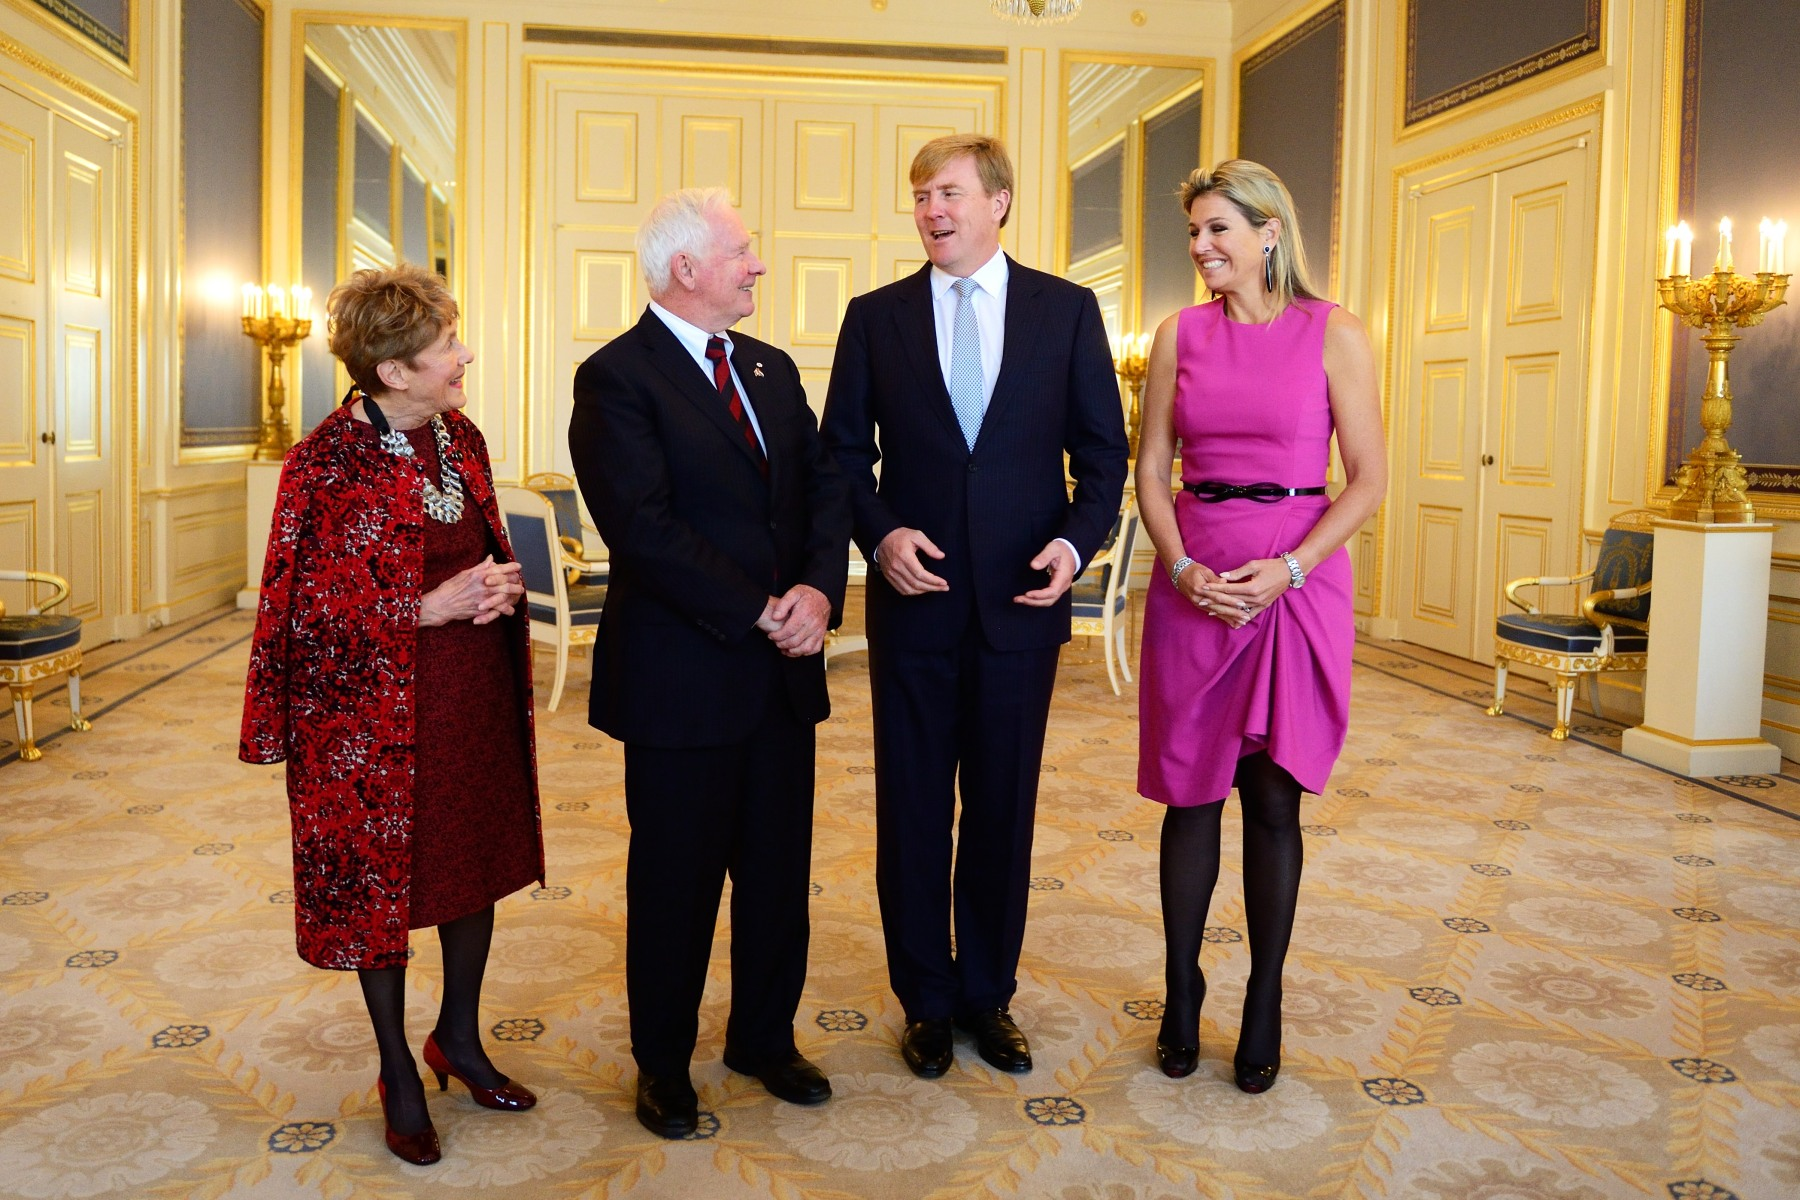 Their Excellencies then had an audience with His Majesty King Willem-Alexander and Her Majesty Queen Máxima of The Netherlands at Noordeinde Palace.